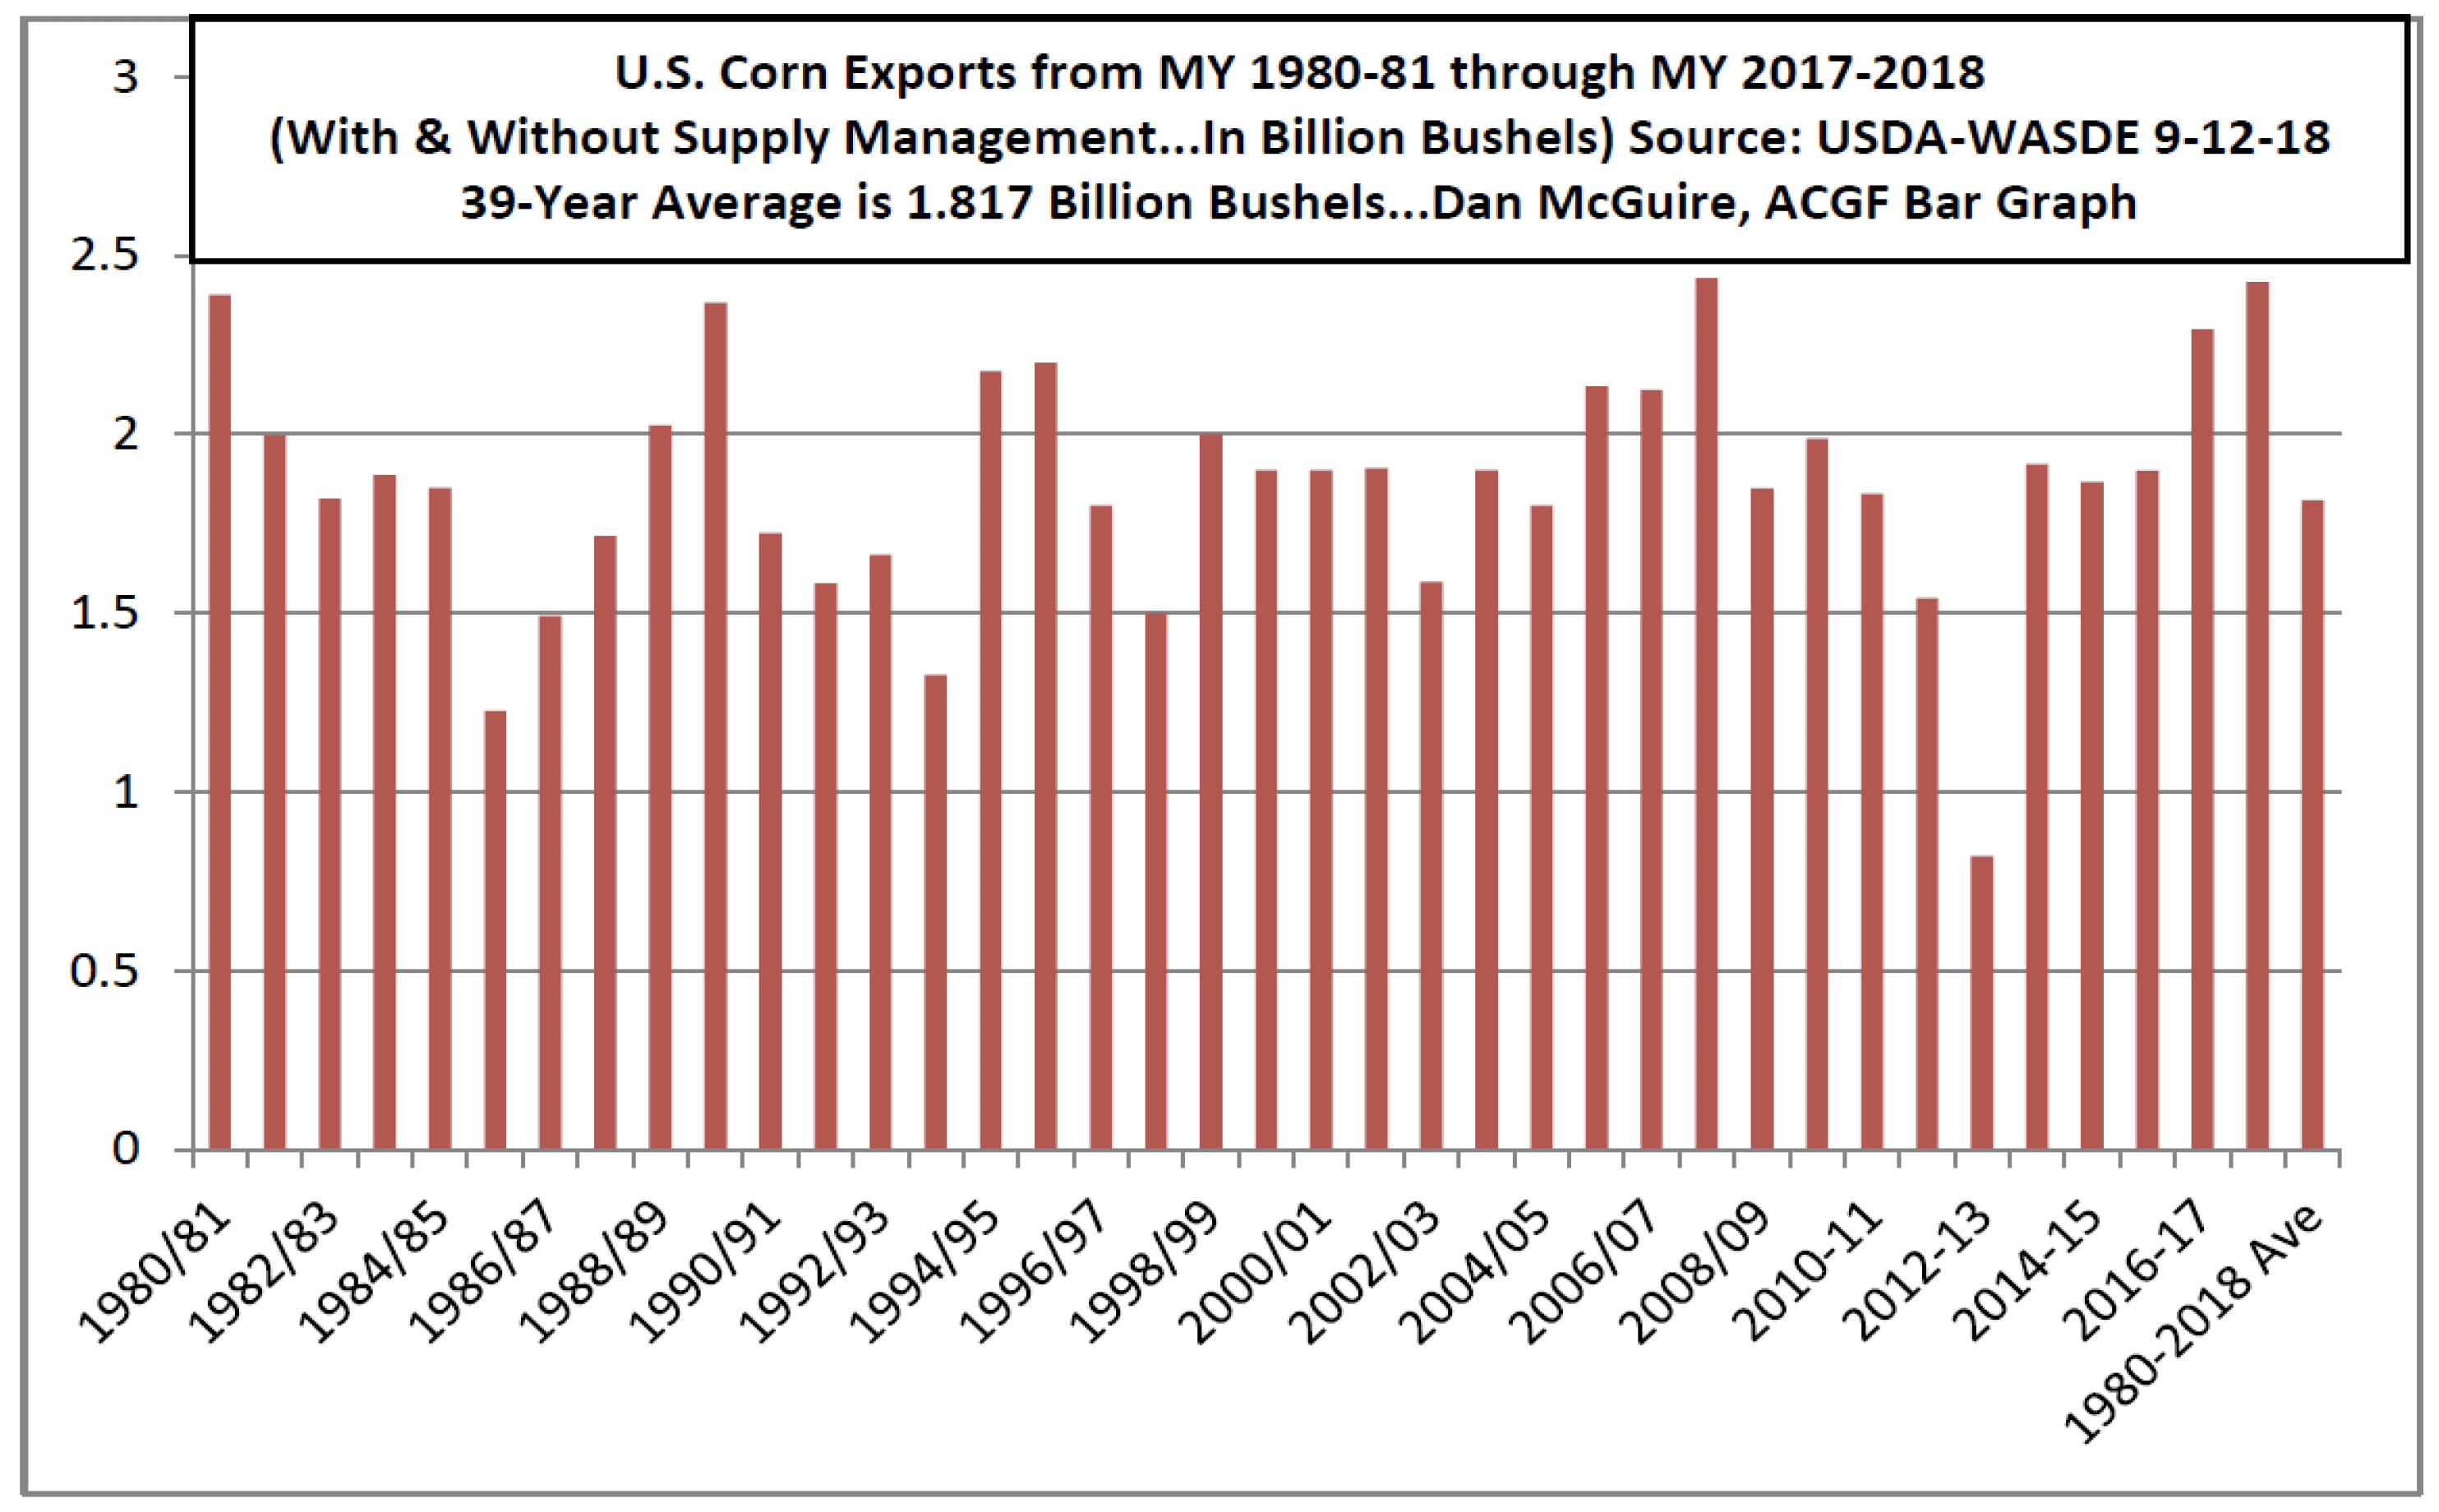 U.S. Corn Exports from MY 1980-81 through MY 2017-18